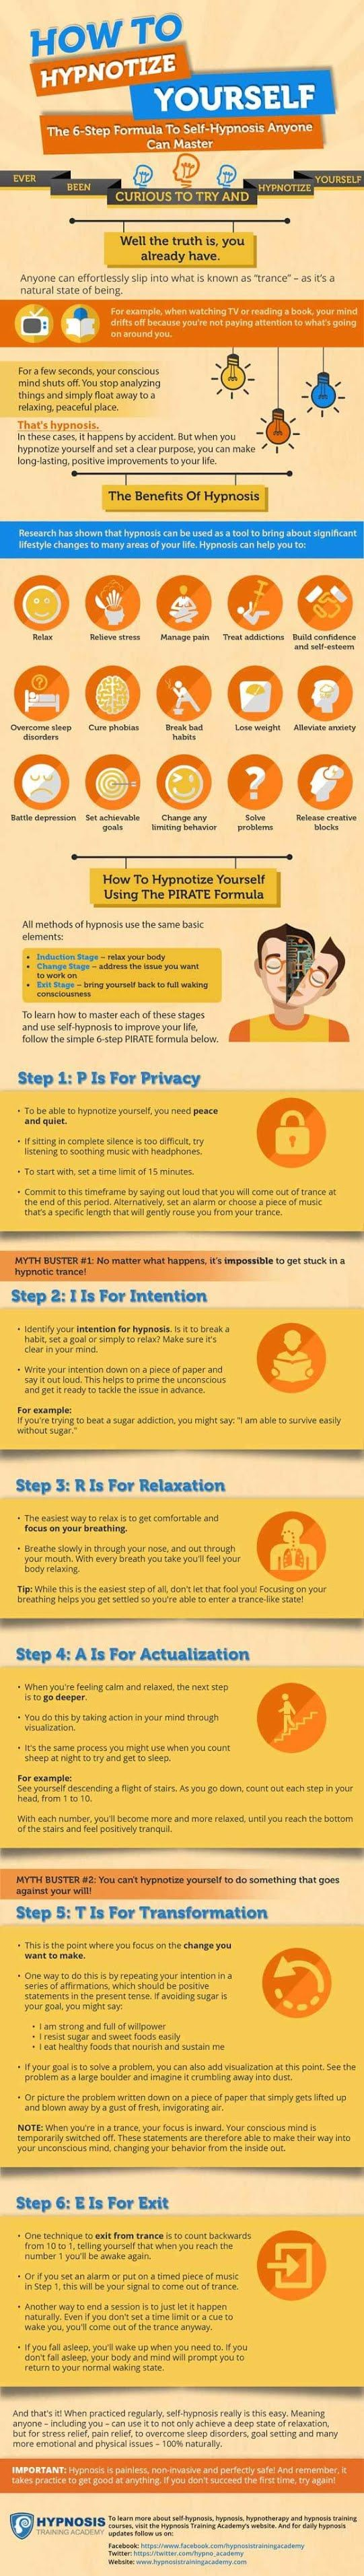 How To Hypnotize Yourself The 6 Step Self Hypnosis Formula Infographic Hypnosis Hypnotize Yourself Learn Hypnosis